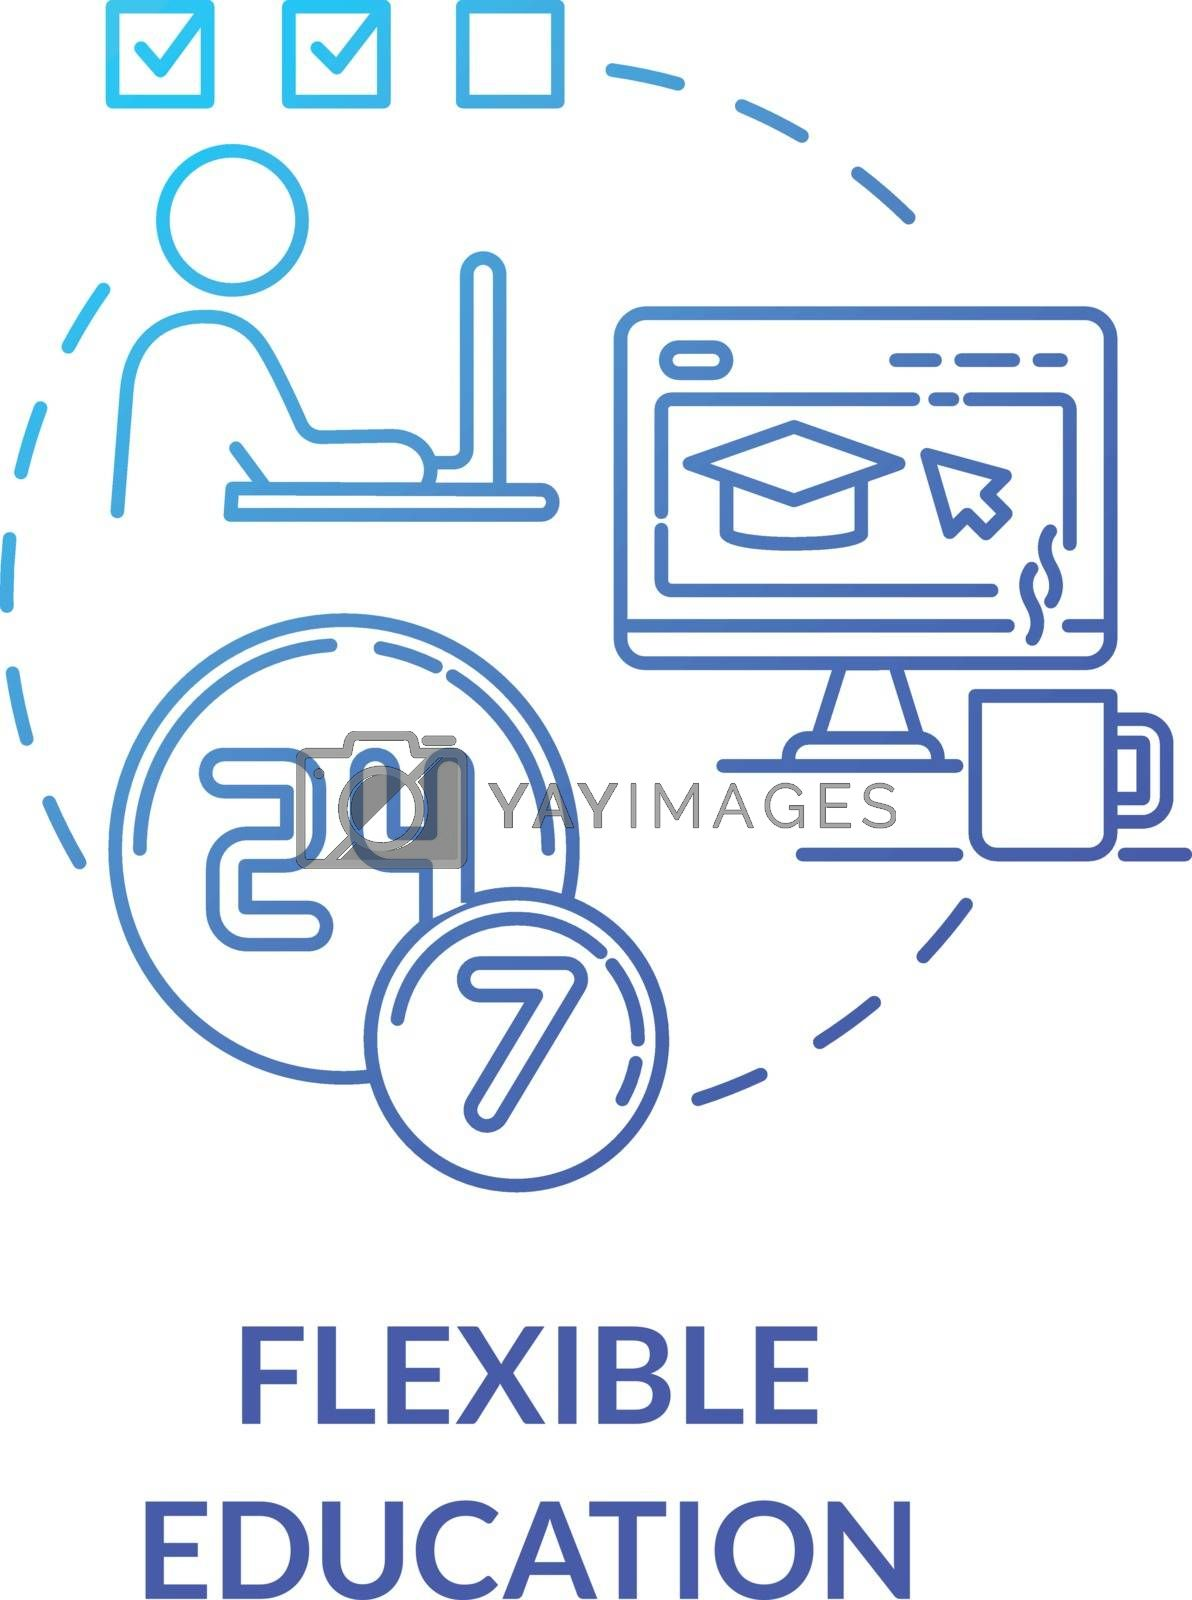 Flexible education concept icon. Remote learning. Online universities. E learning and teaching. Homeschooling idea thin line illustration. Vector isolated outline RGB color drawing